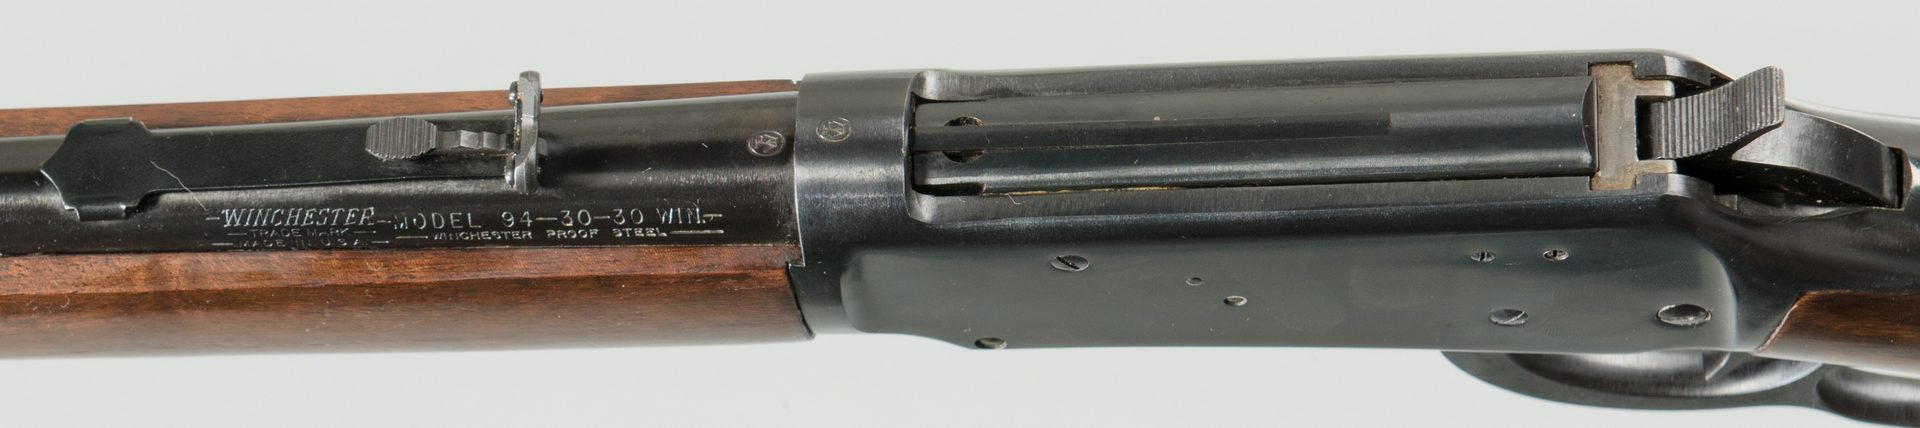 Lot 820: Winchester Model 94, 30-30 Win Lever Action Rifle